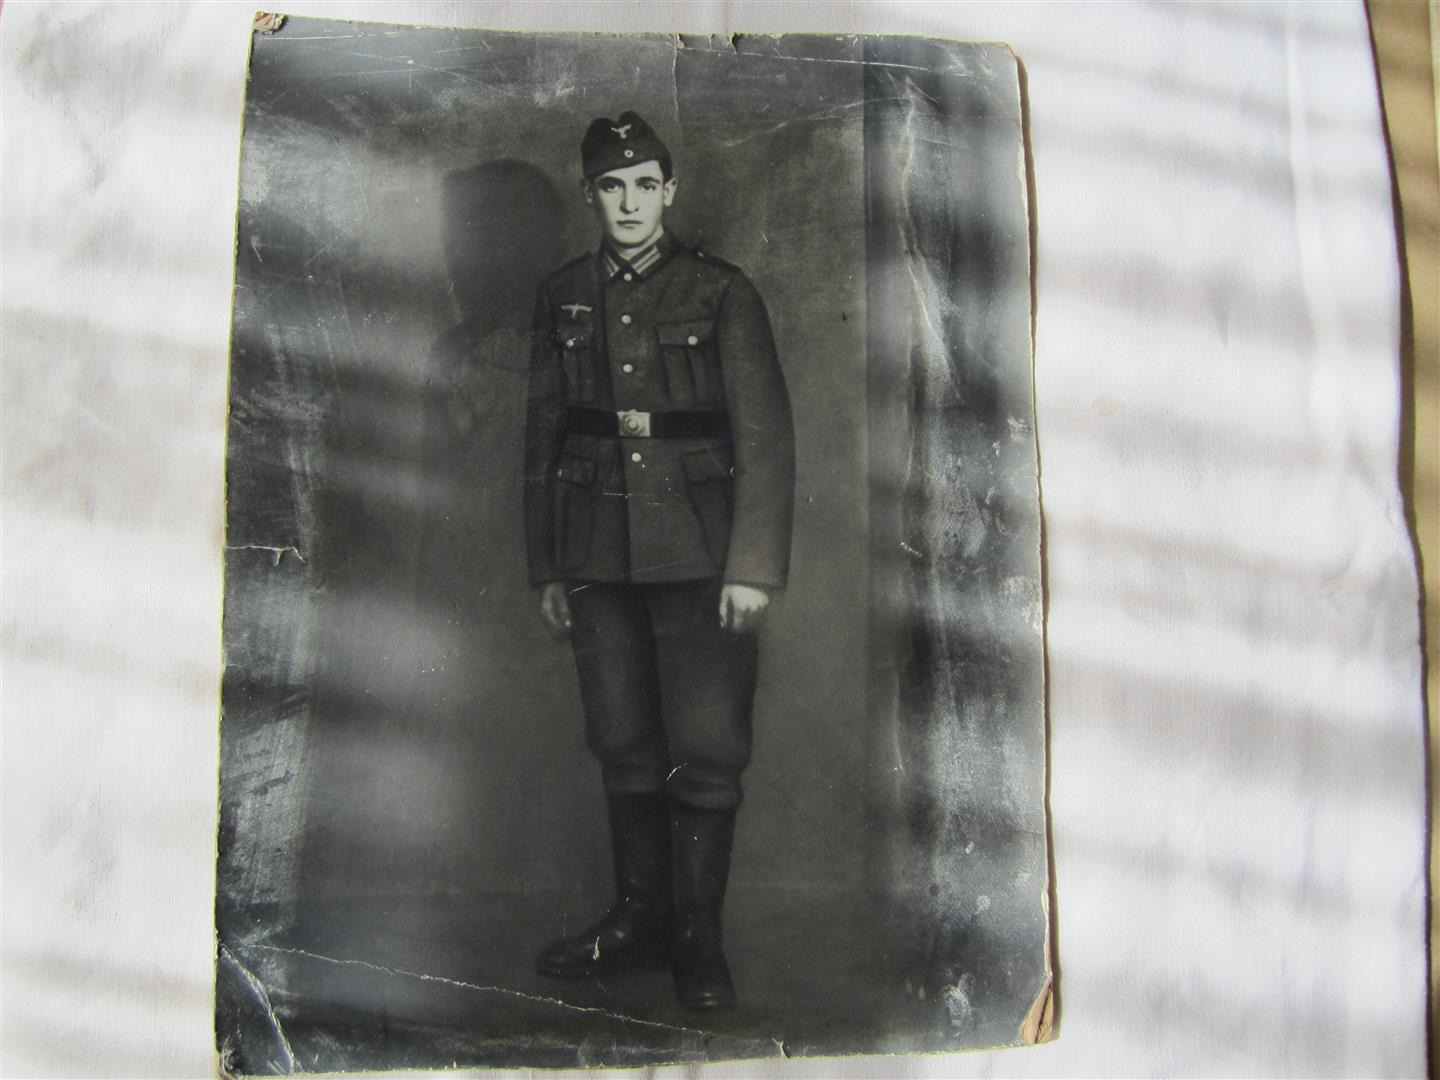 WW2 WH Soldier's Photo